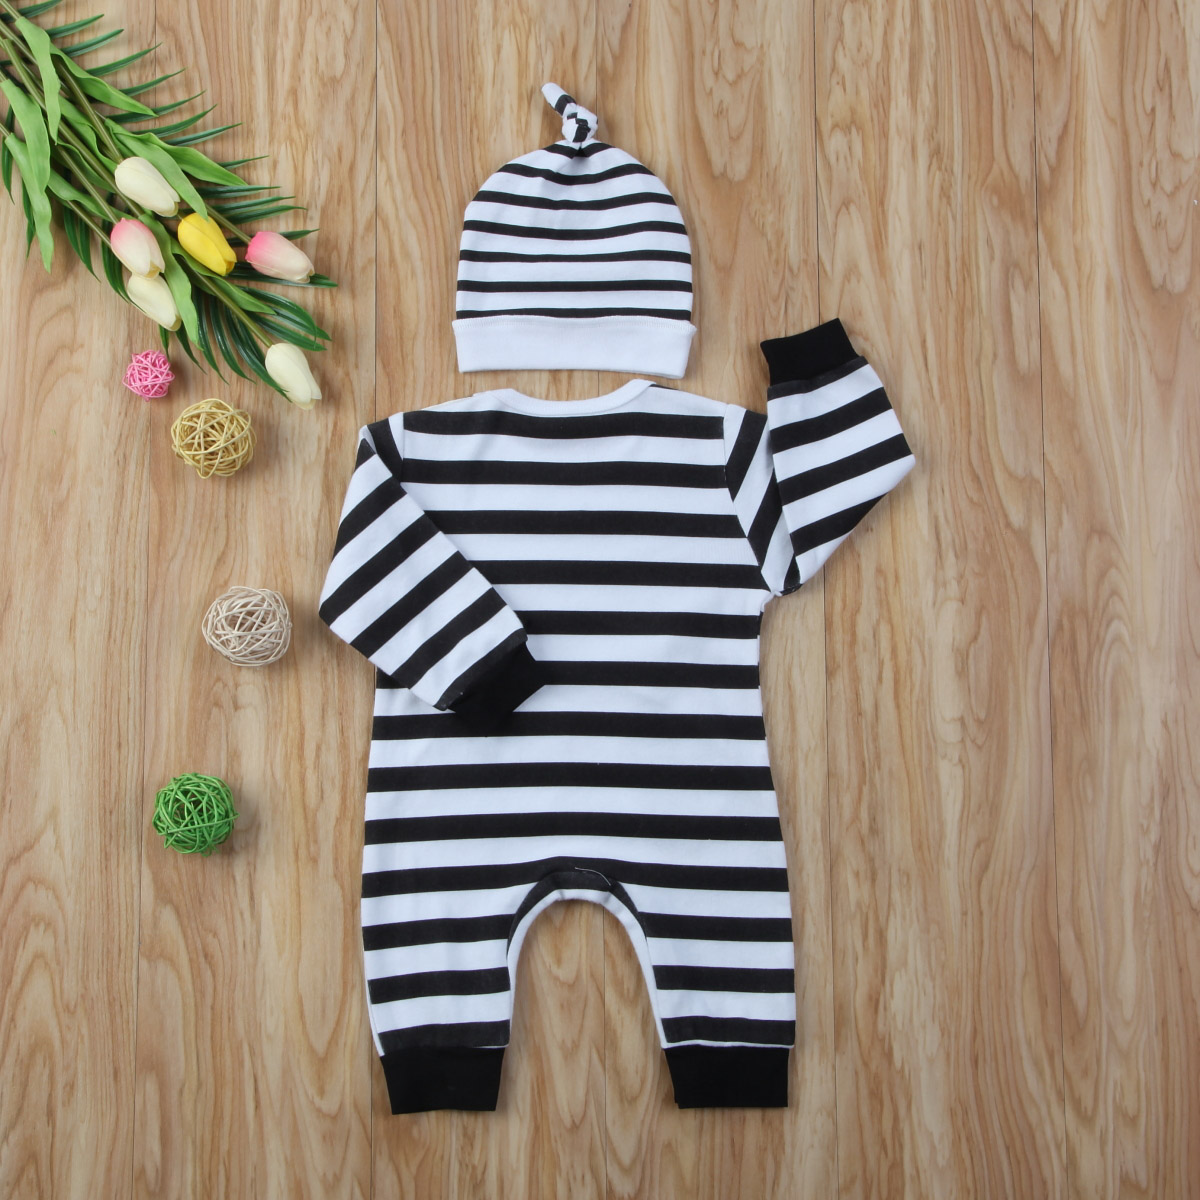 560b6ade604 2pcs Cute Infant Kids Baby Boys Girls Chicken Bear Cartoon Stripes Long  Sleeve Romper Hat Outfits Clothes Set-in Rompers from Mother   Kids on ...